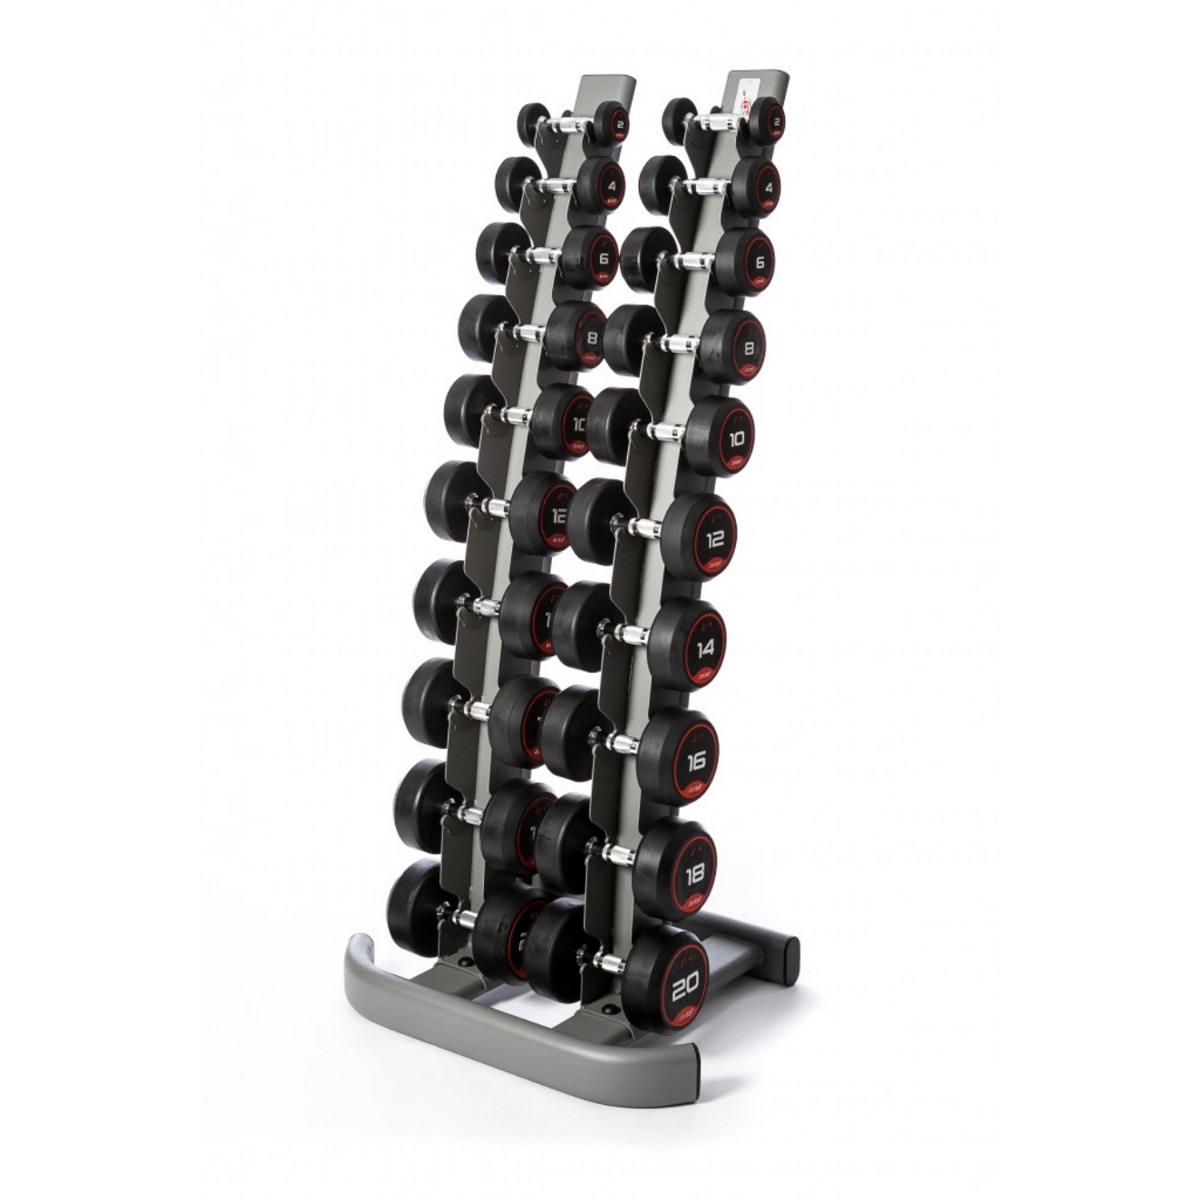 Jordan Rubber Dumbbell Set 40-50kg